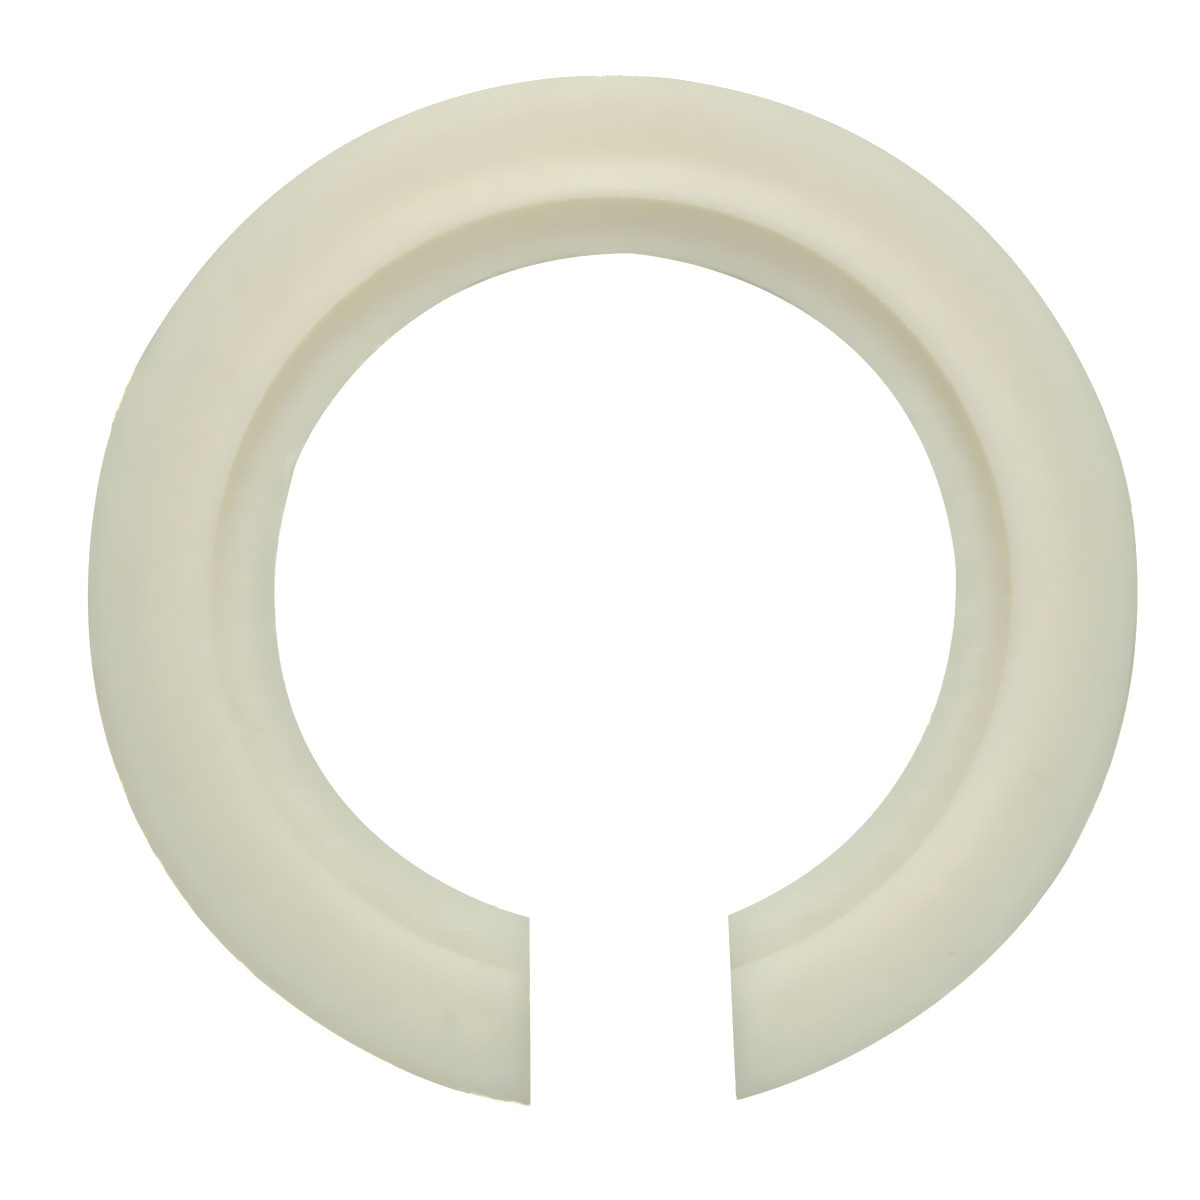 Lampshade Ring Adaptor Ceiling Light Reducer Shade Light Fitting Washer For E27 To E14 Lighting Accessories